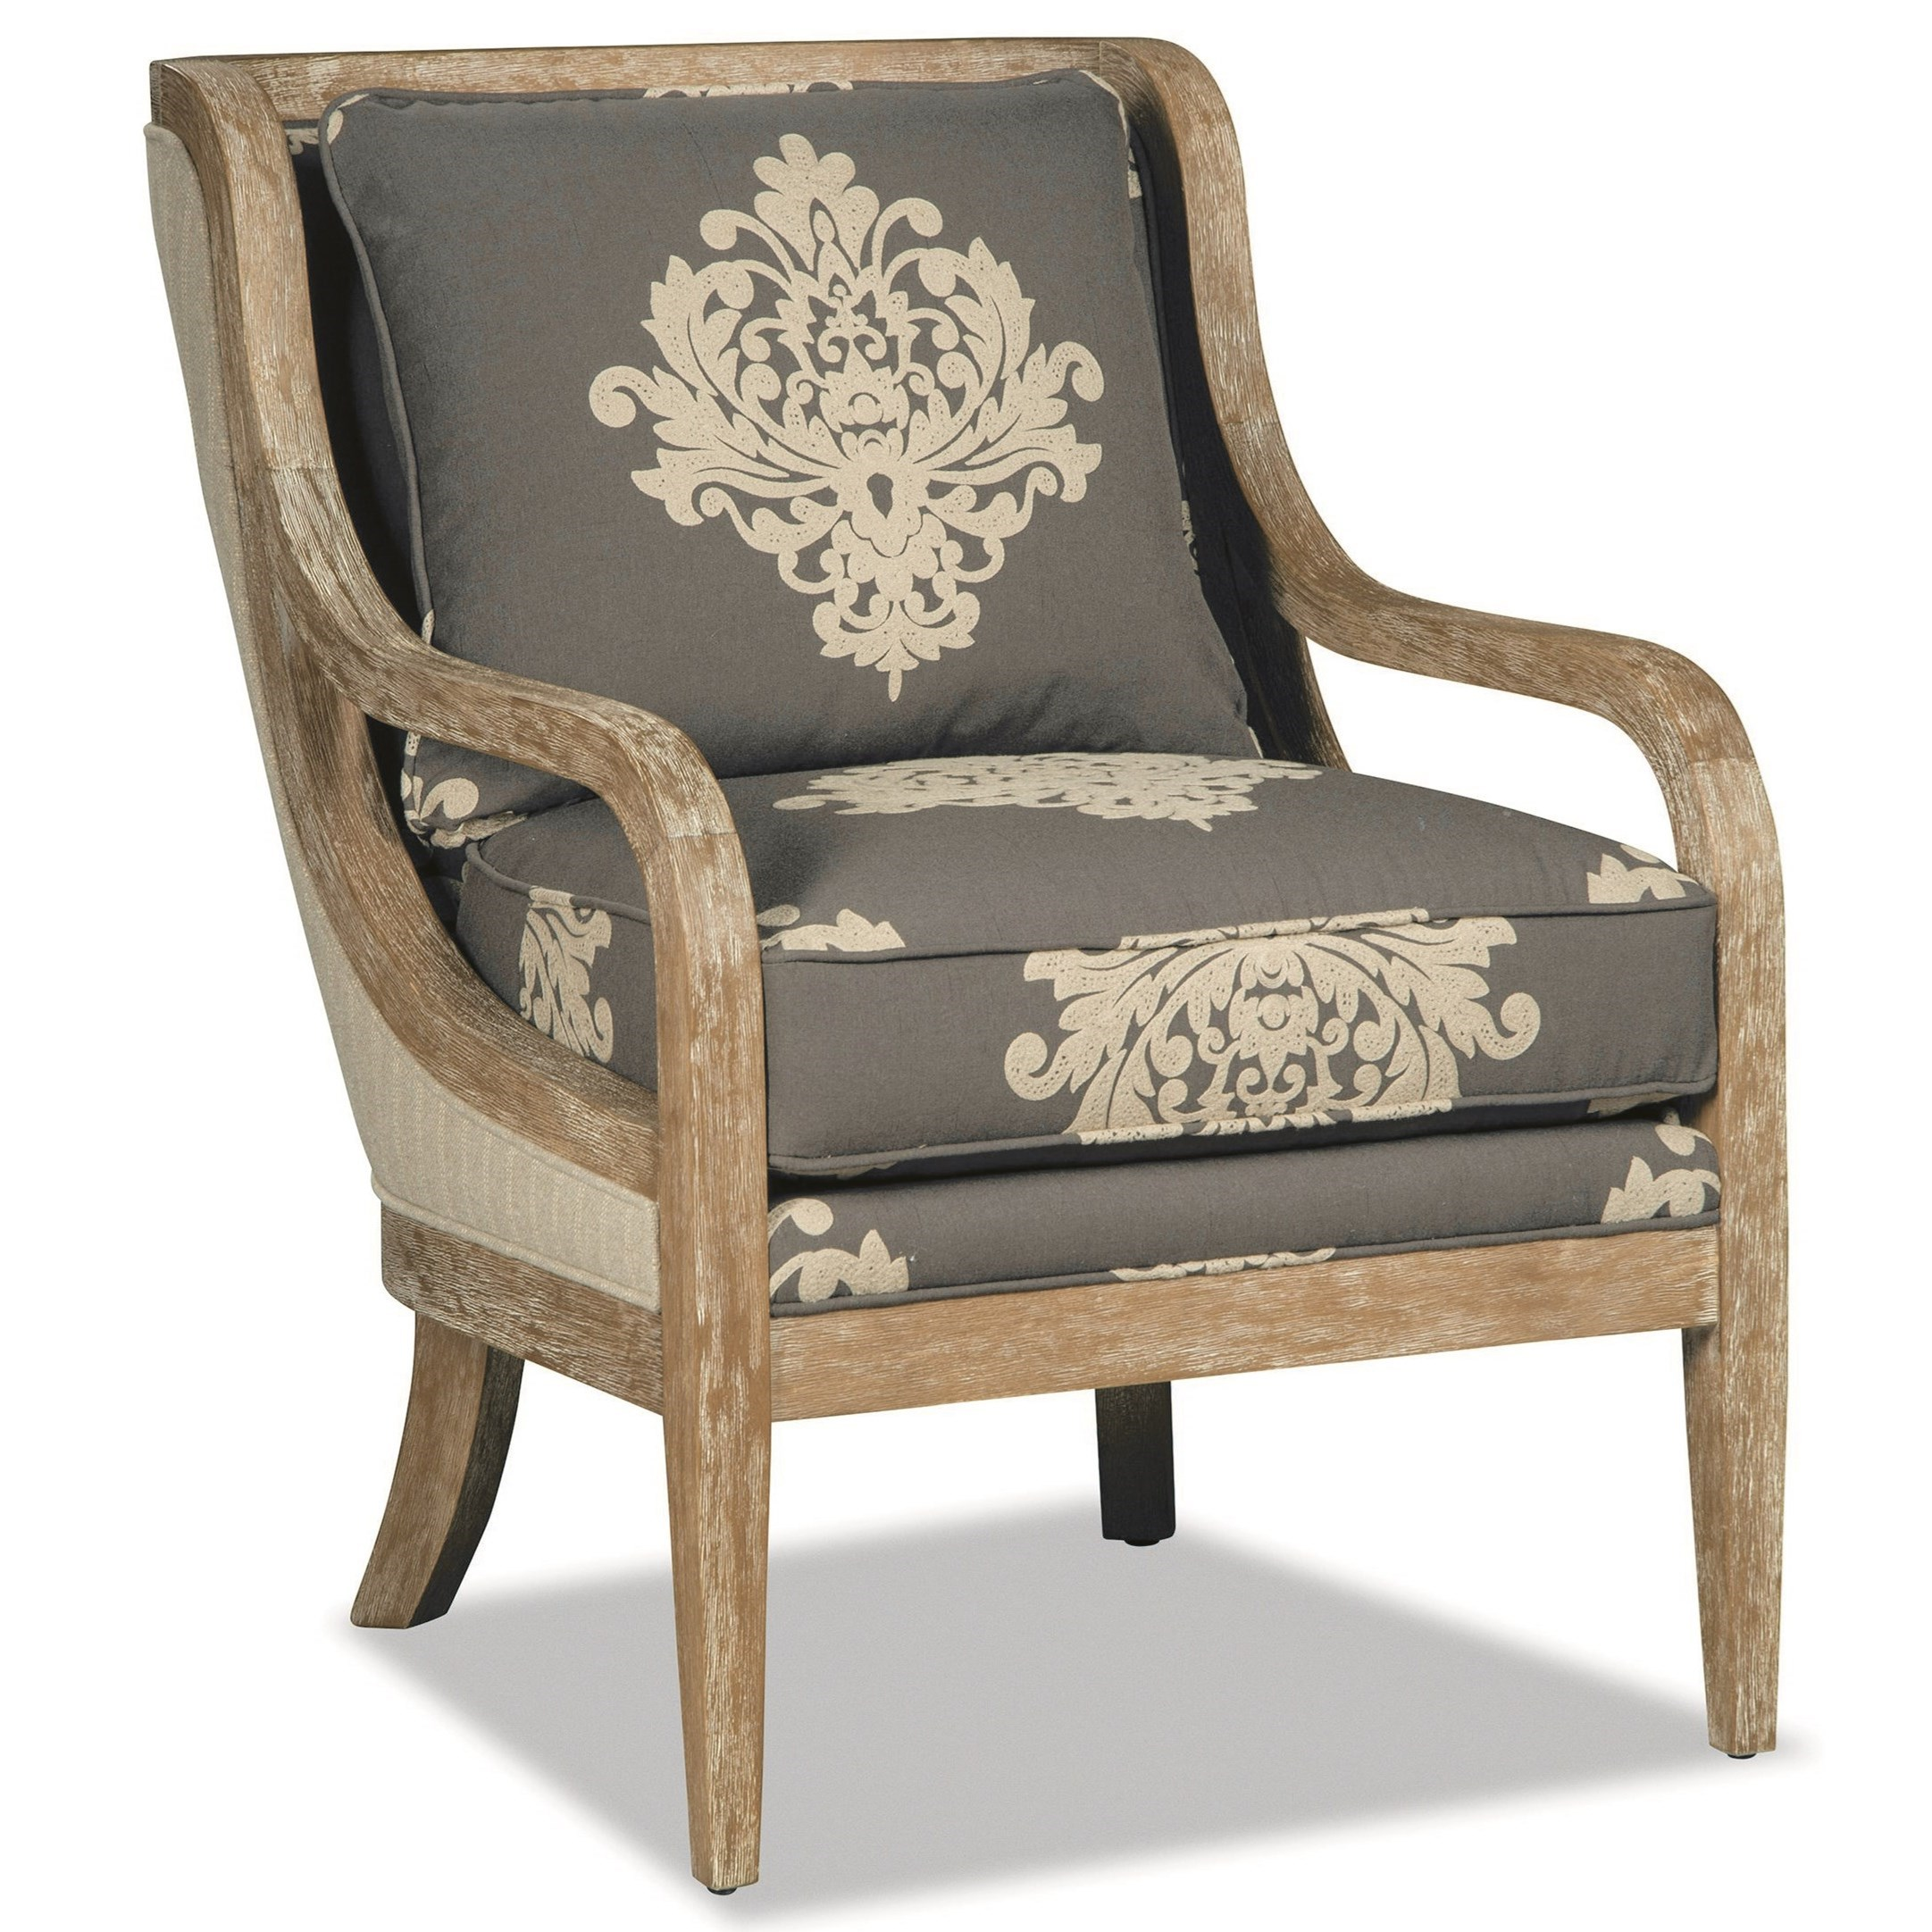 067410-067510 Accent Chair -Weathered Oak by Craftmaster at Adcock Furniture